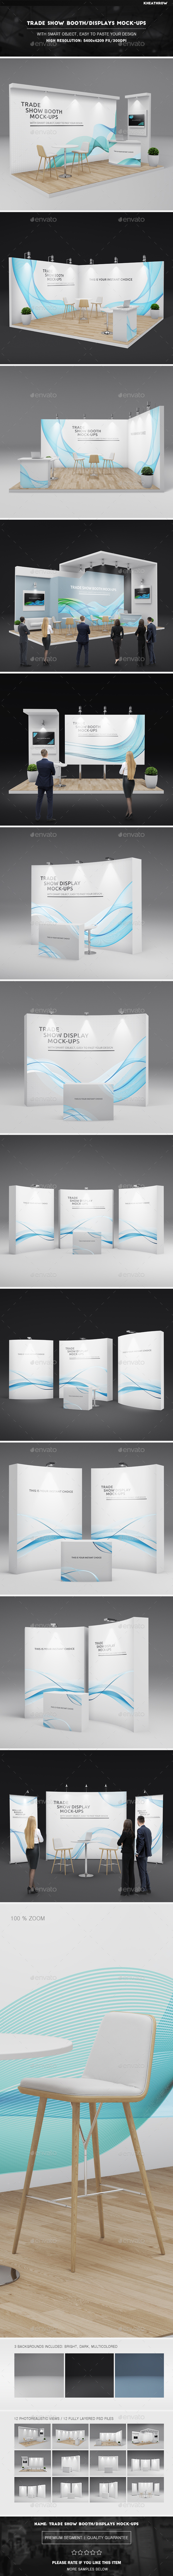 GraphicRiver Trade Show Booth Displays Mock-Ups 21061891